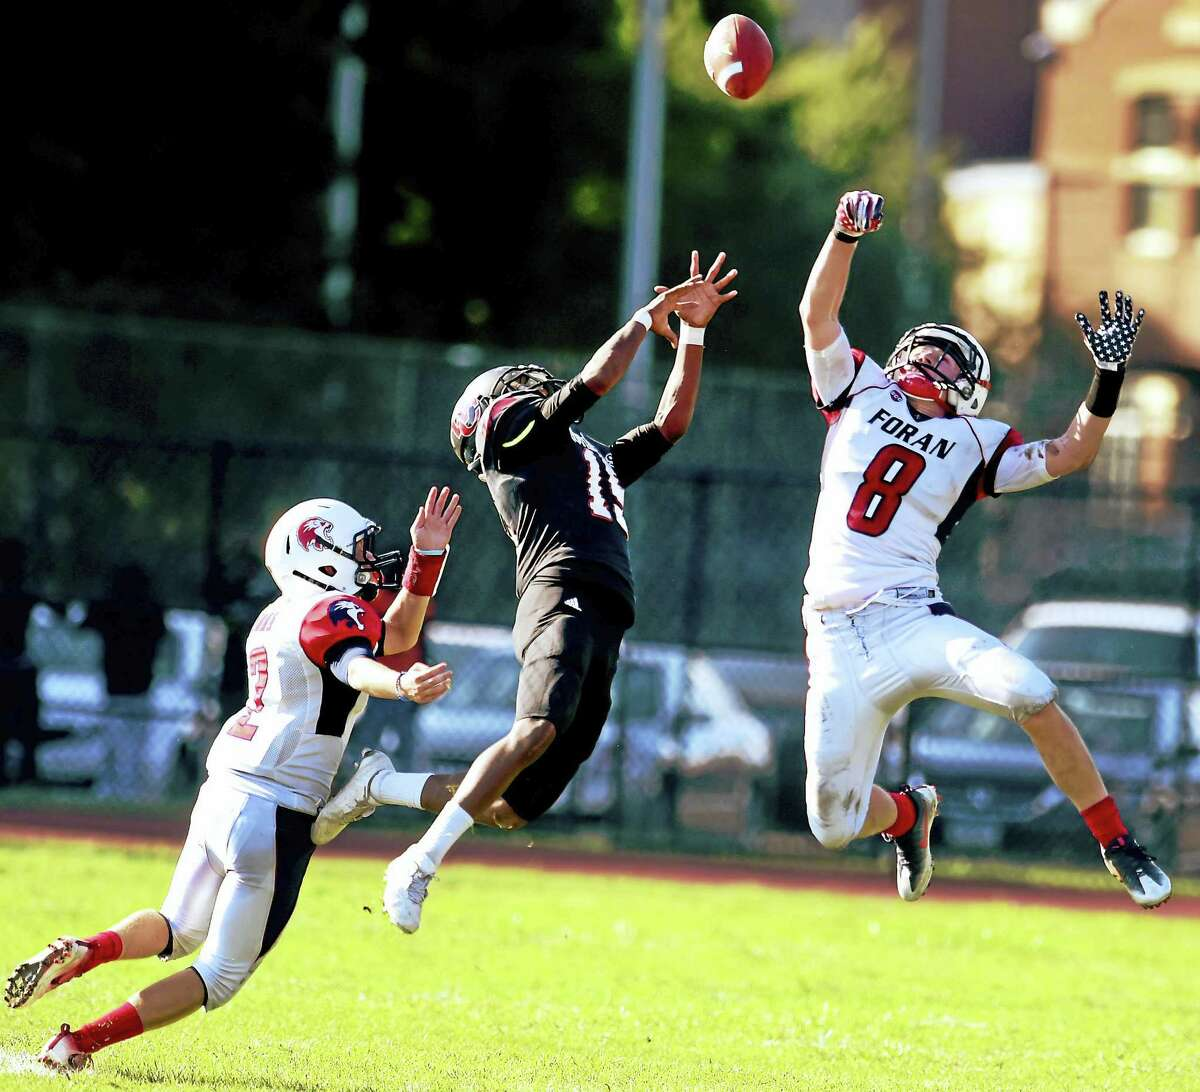 Defensive backs Mark Wooten, left, and Jared Hubler, right, of Foran High School double cover Dyante Howard of Wilbur Cross High School as they break up a pass play during second quarter football action at Cross H.S. in New Haven Friday afternoon, Sept. 9, 2016.